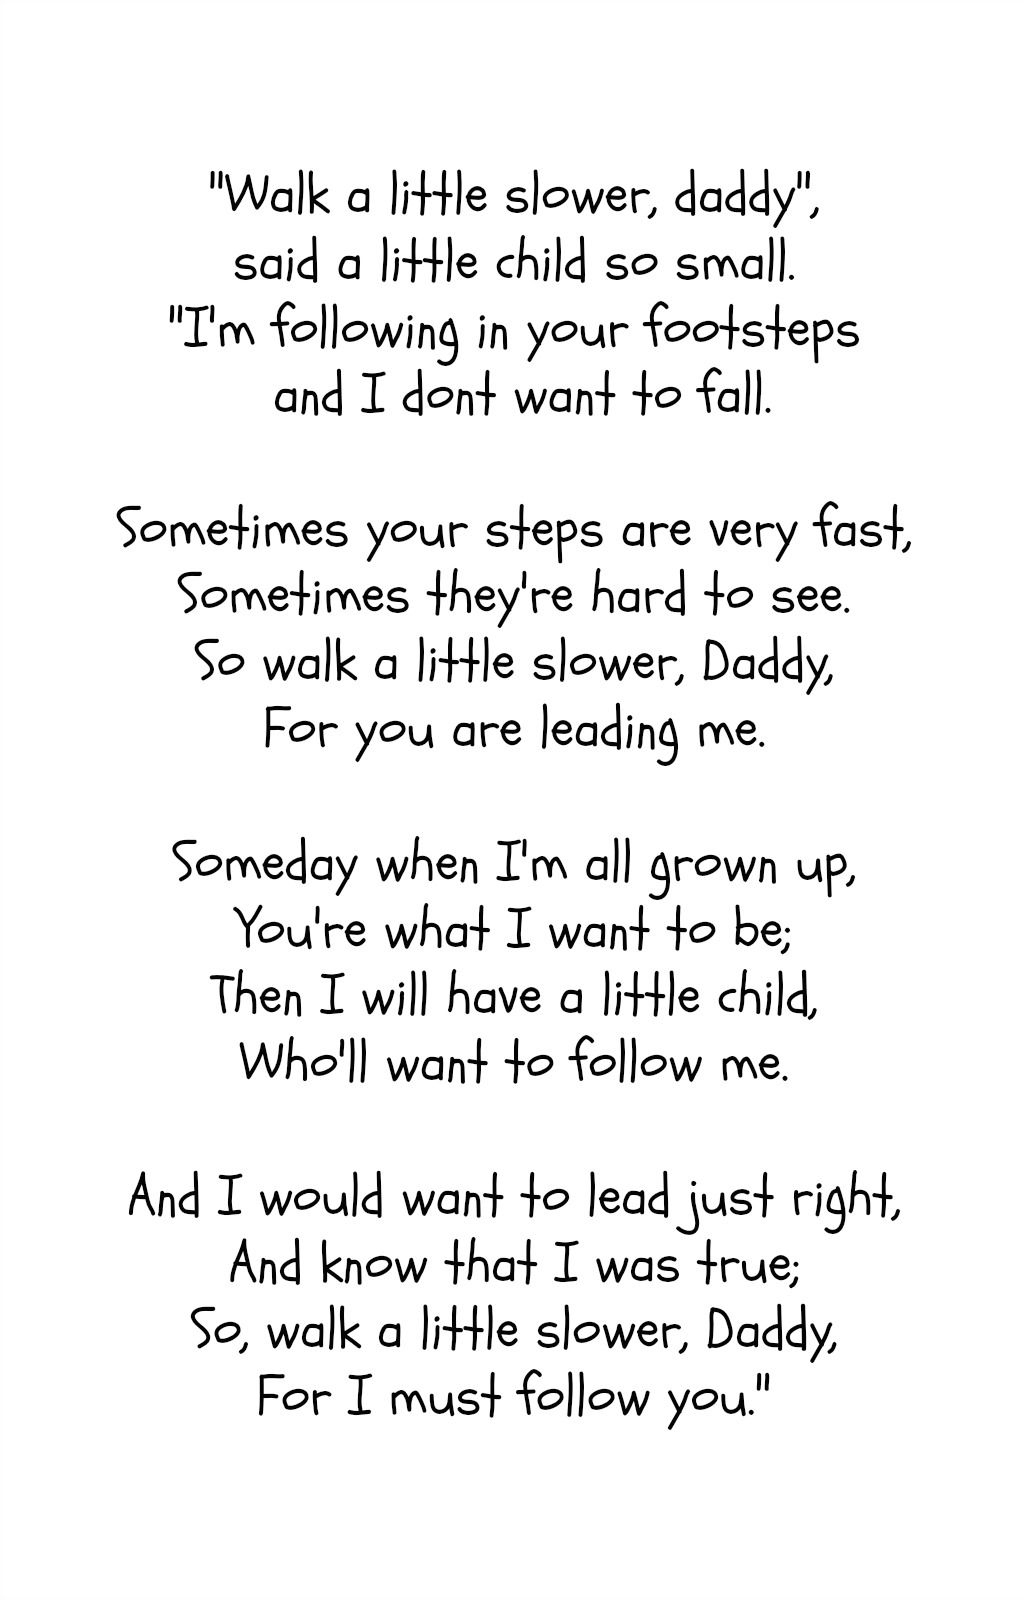 Father's Day Poem- Free Printable   Interesting   Pinterest - Free Printable Fathers Day Poems For Preschoolers